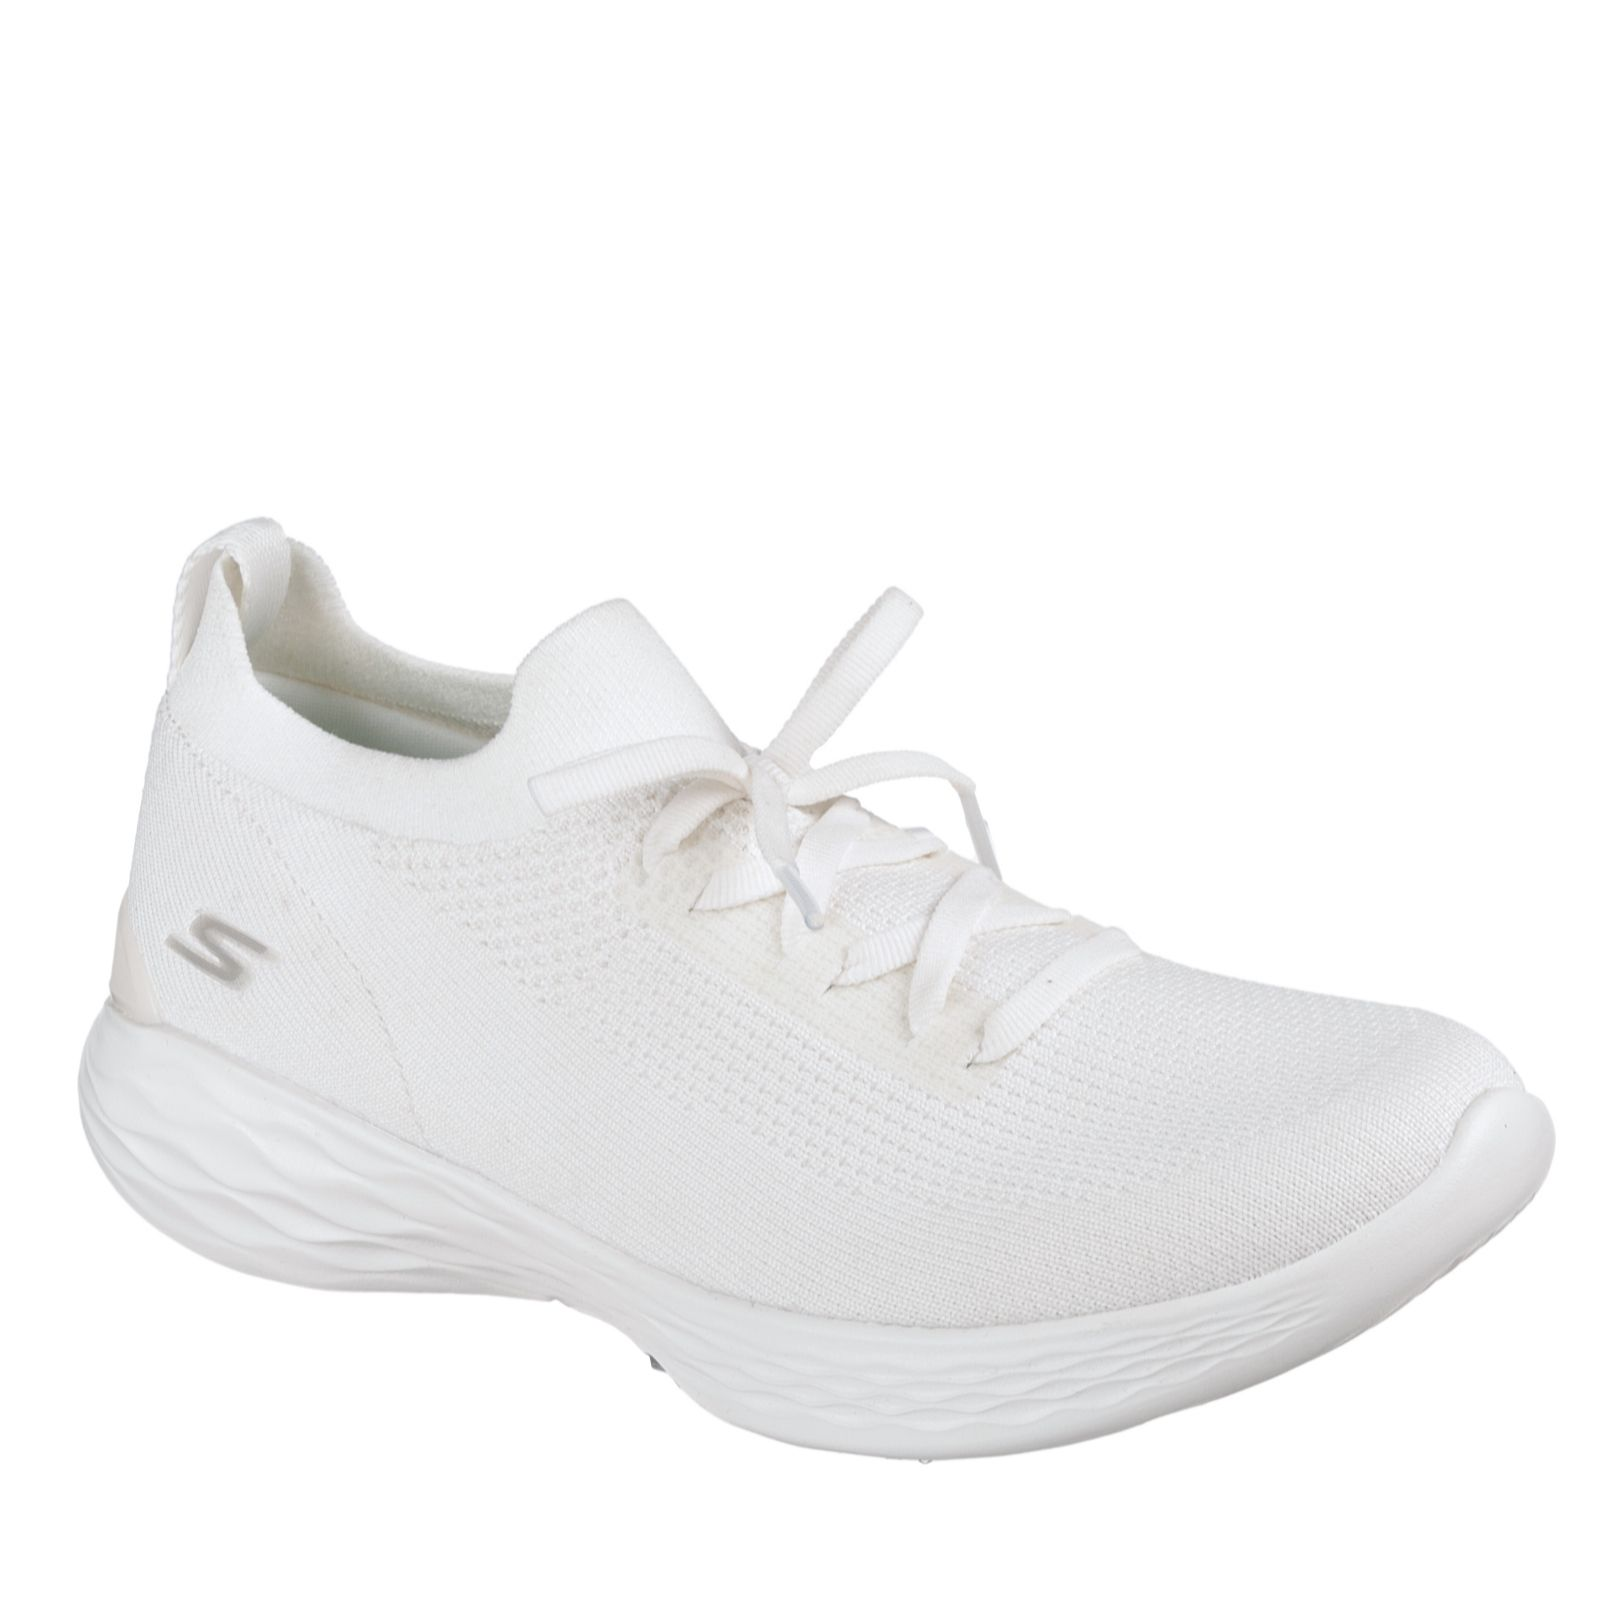 c52da467d3d9 Skechers YOU Shine Slip On Knit Trainer with Memory Foam - QVC UK